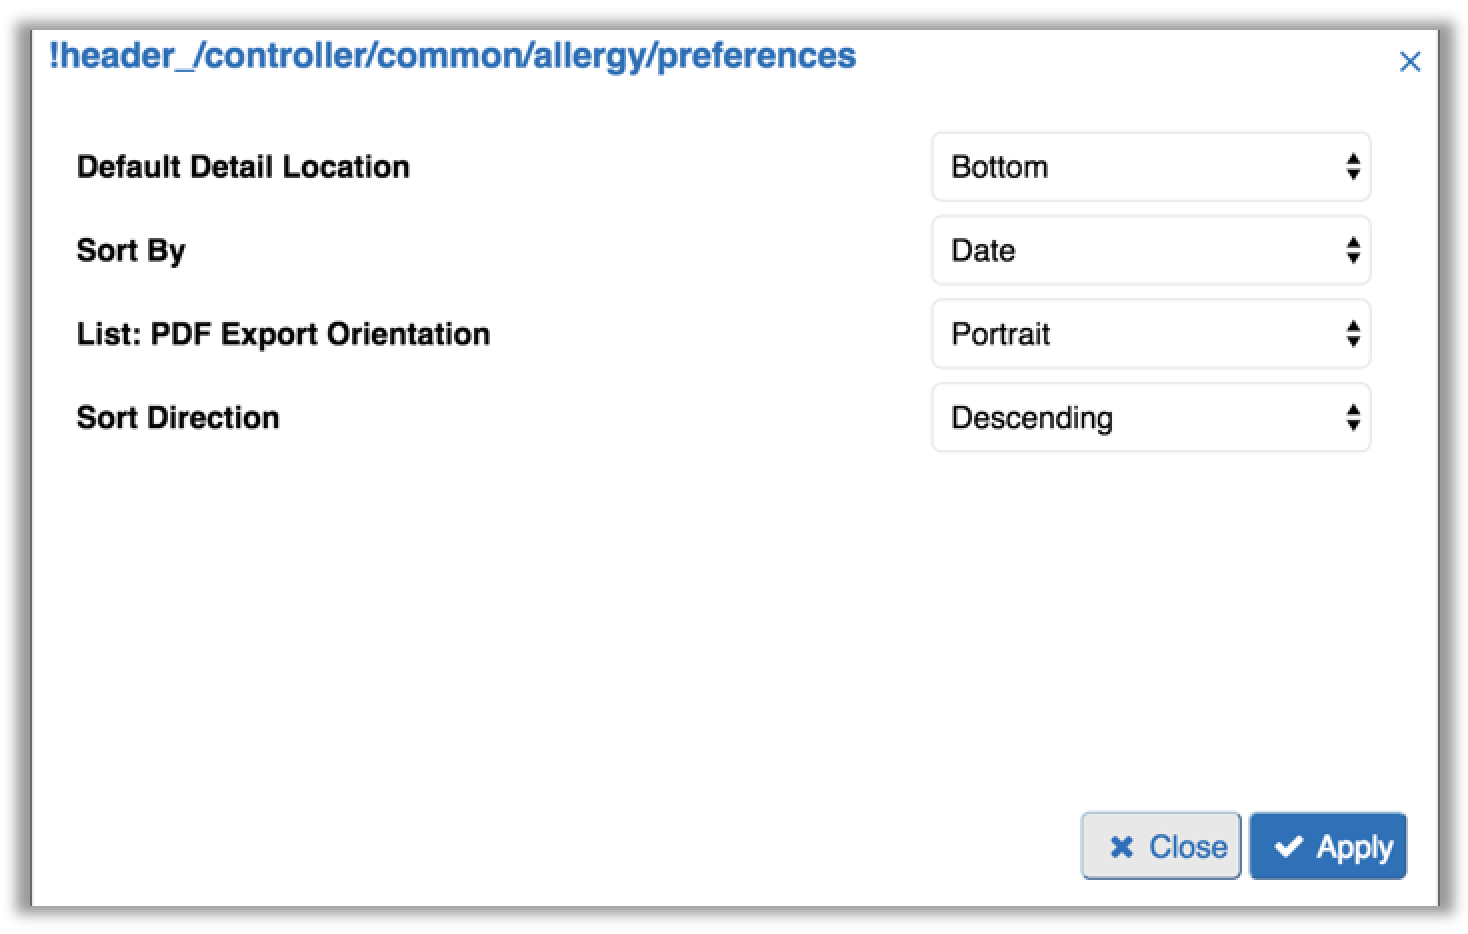 Image of the allergies module preferences tab